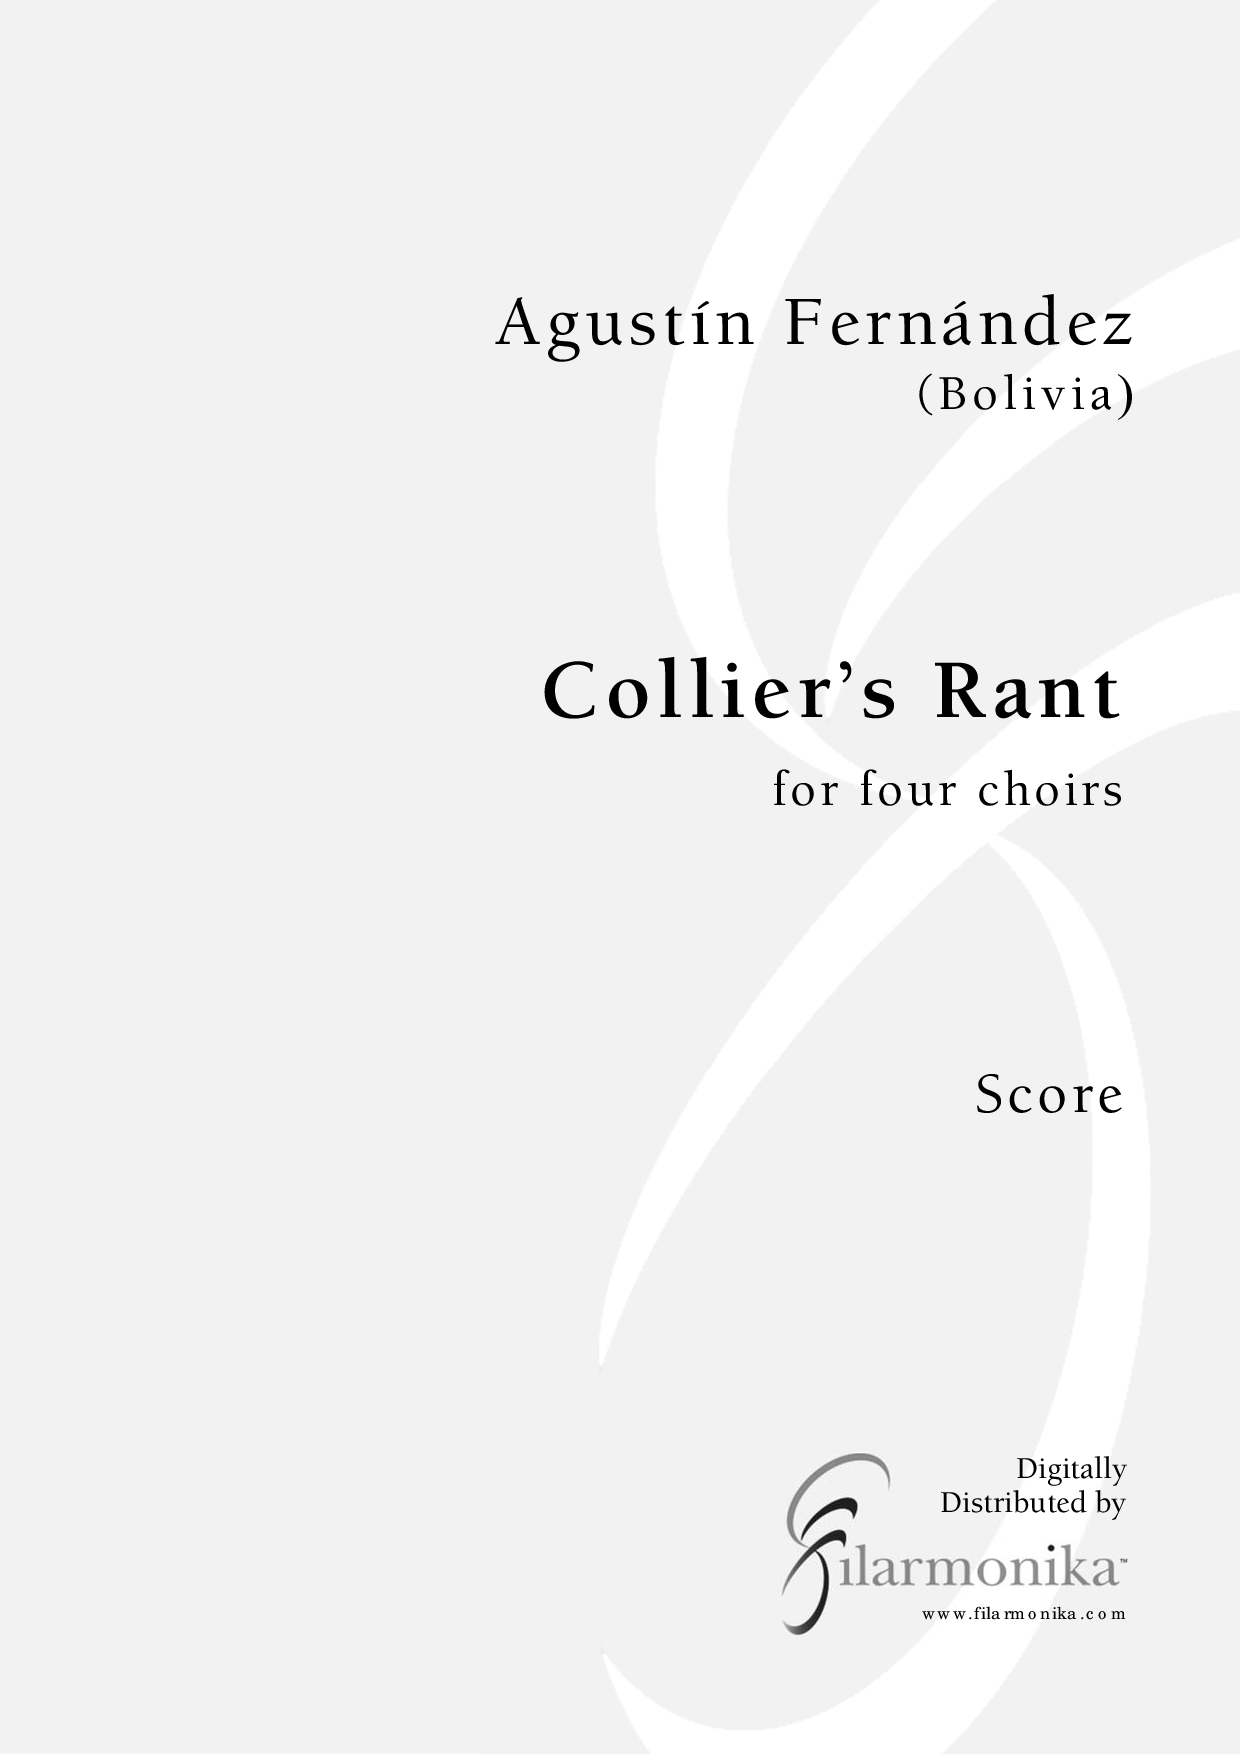 Collier's Rant, for 4 choirs